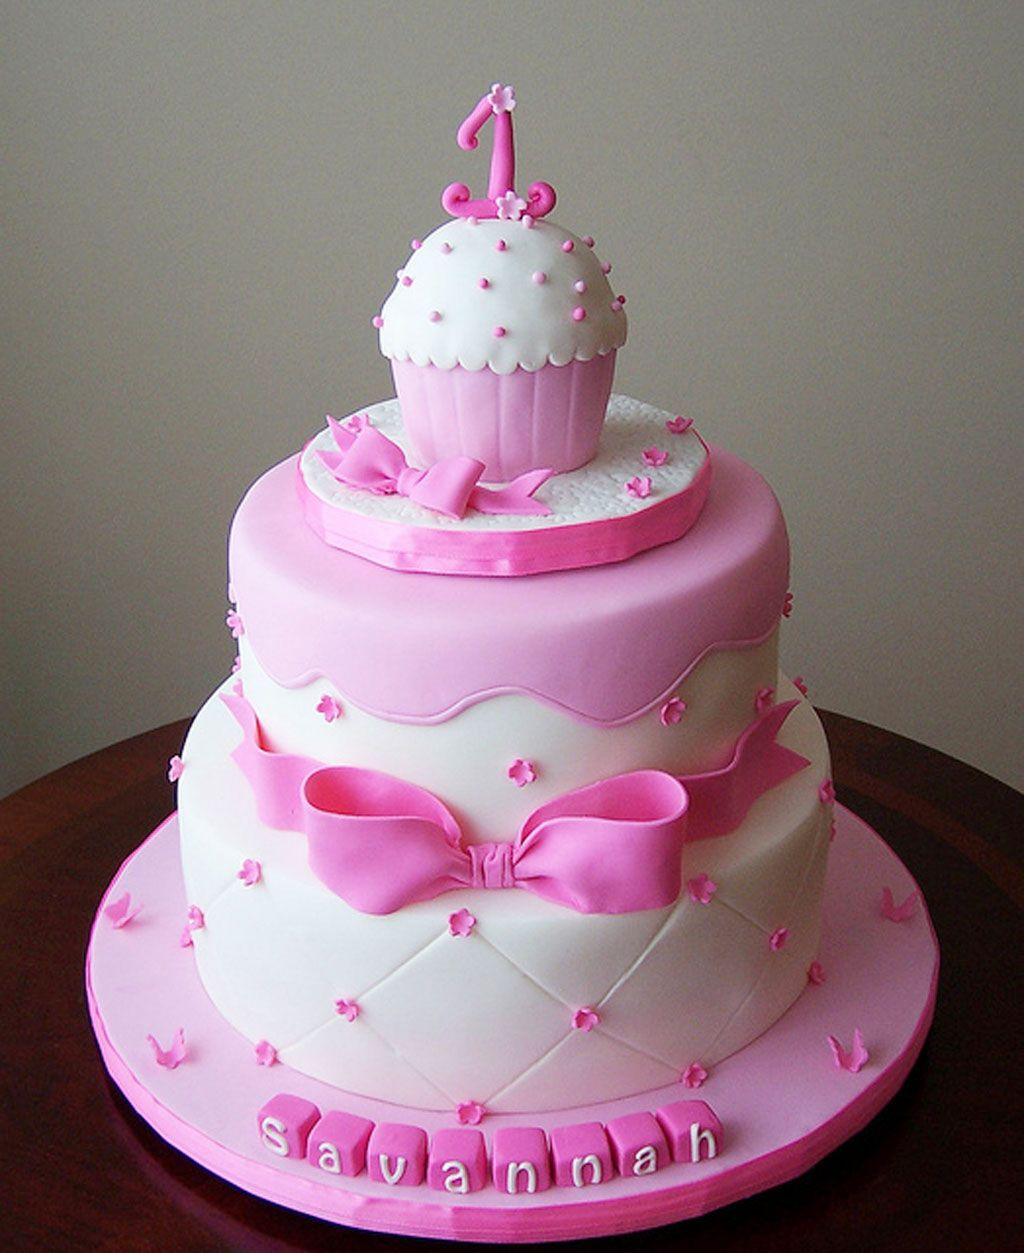 Happy Birthday cakes for girls images and pictures Happy ...